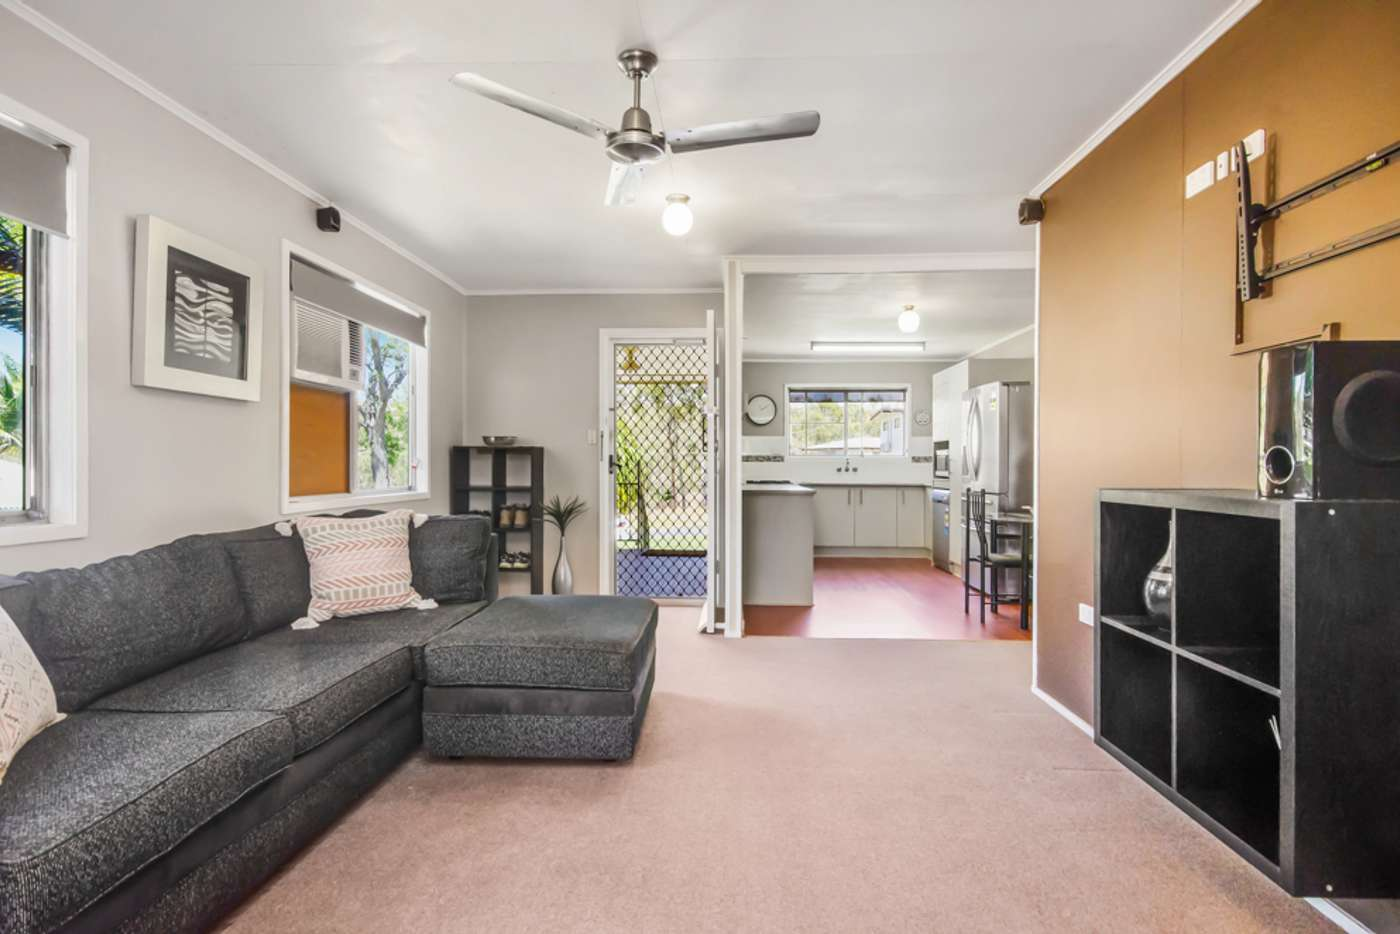 Seventh view of Homely house listing, 7 Pike Crescent, Toolooa QLD 4680